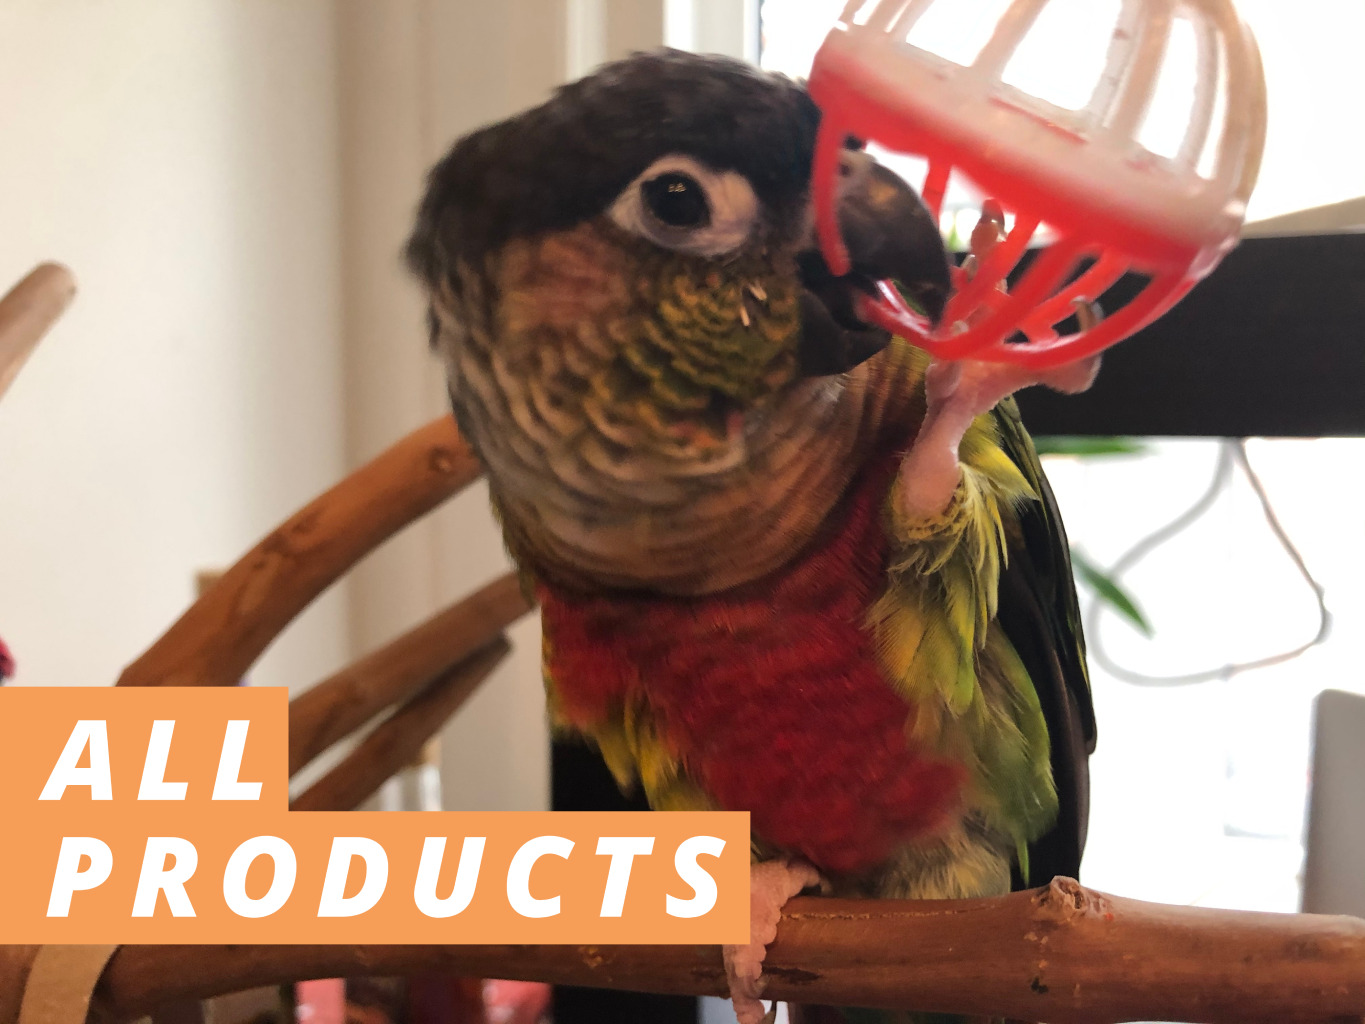 ALL PRODUCTS BANNER